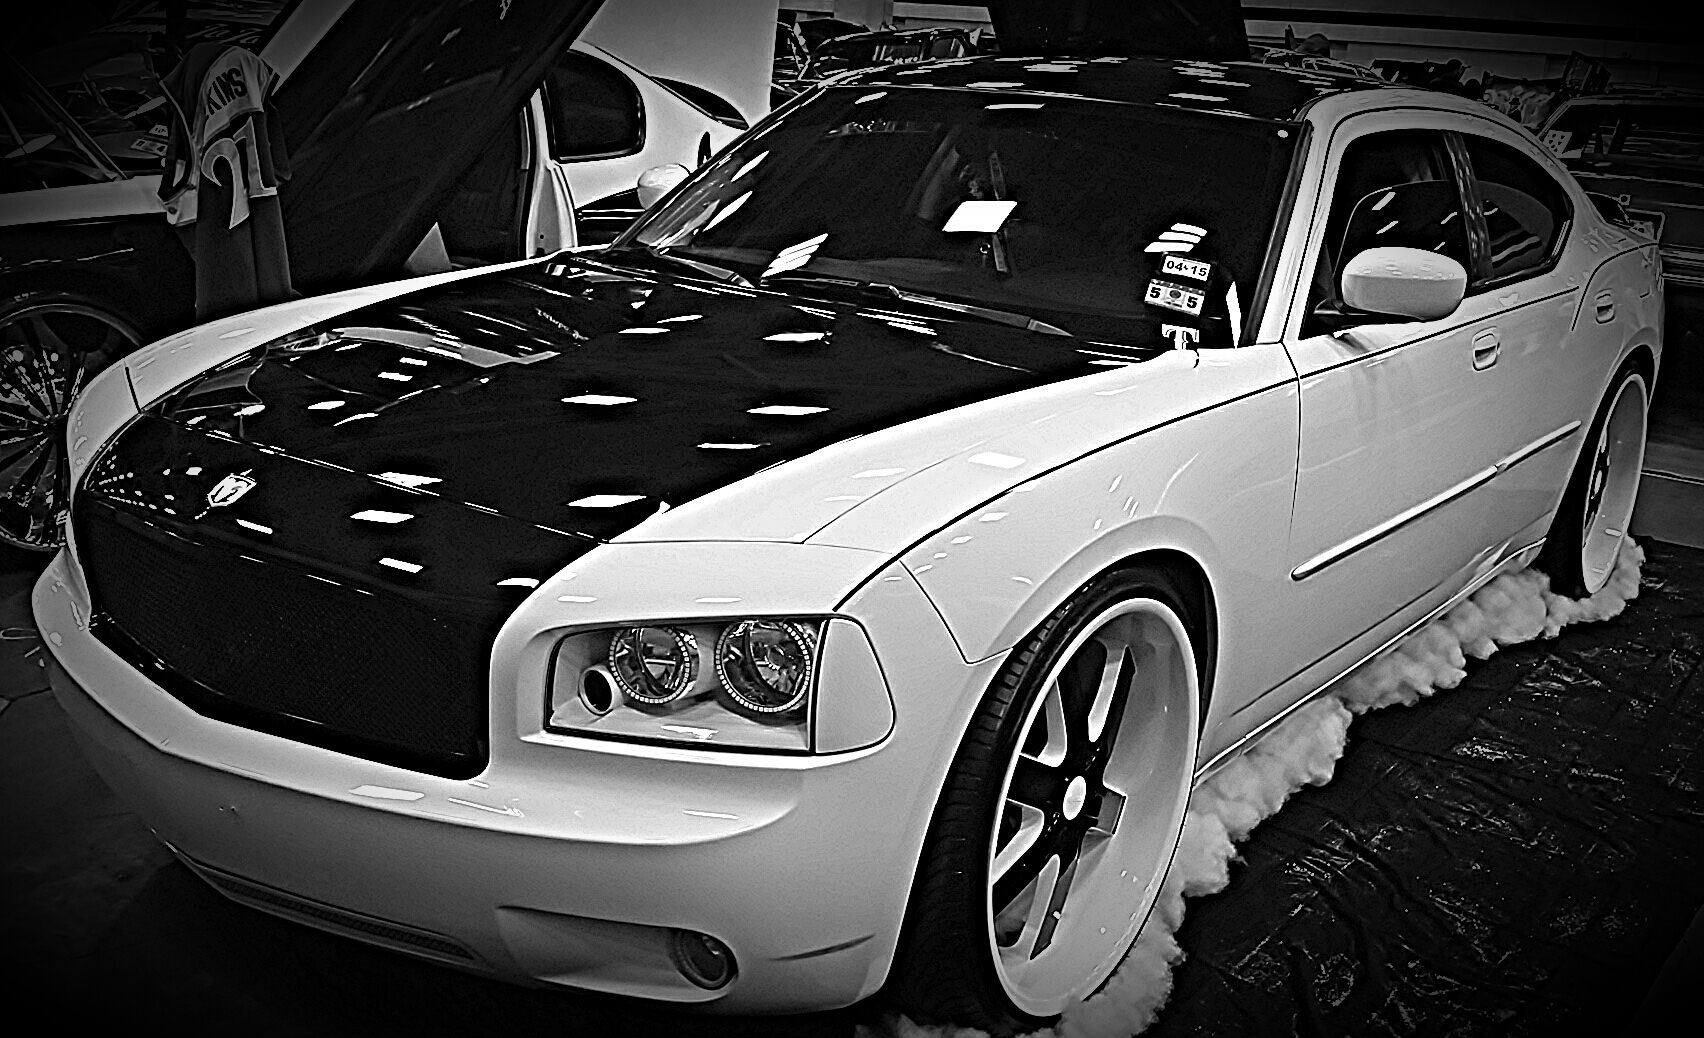 Luis Dodge Charger On 24 S Big Rims Custom Wheels